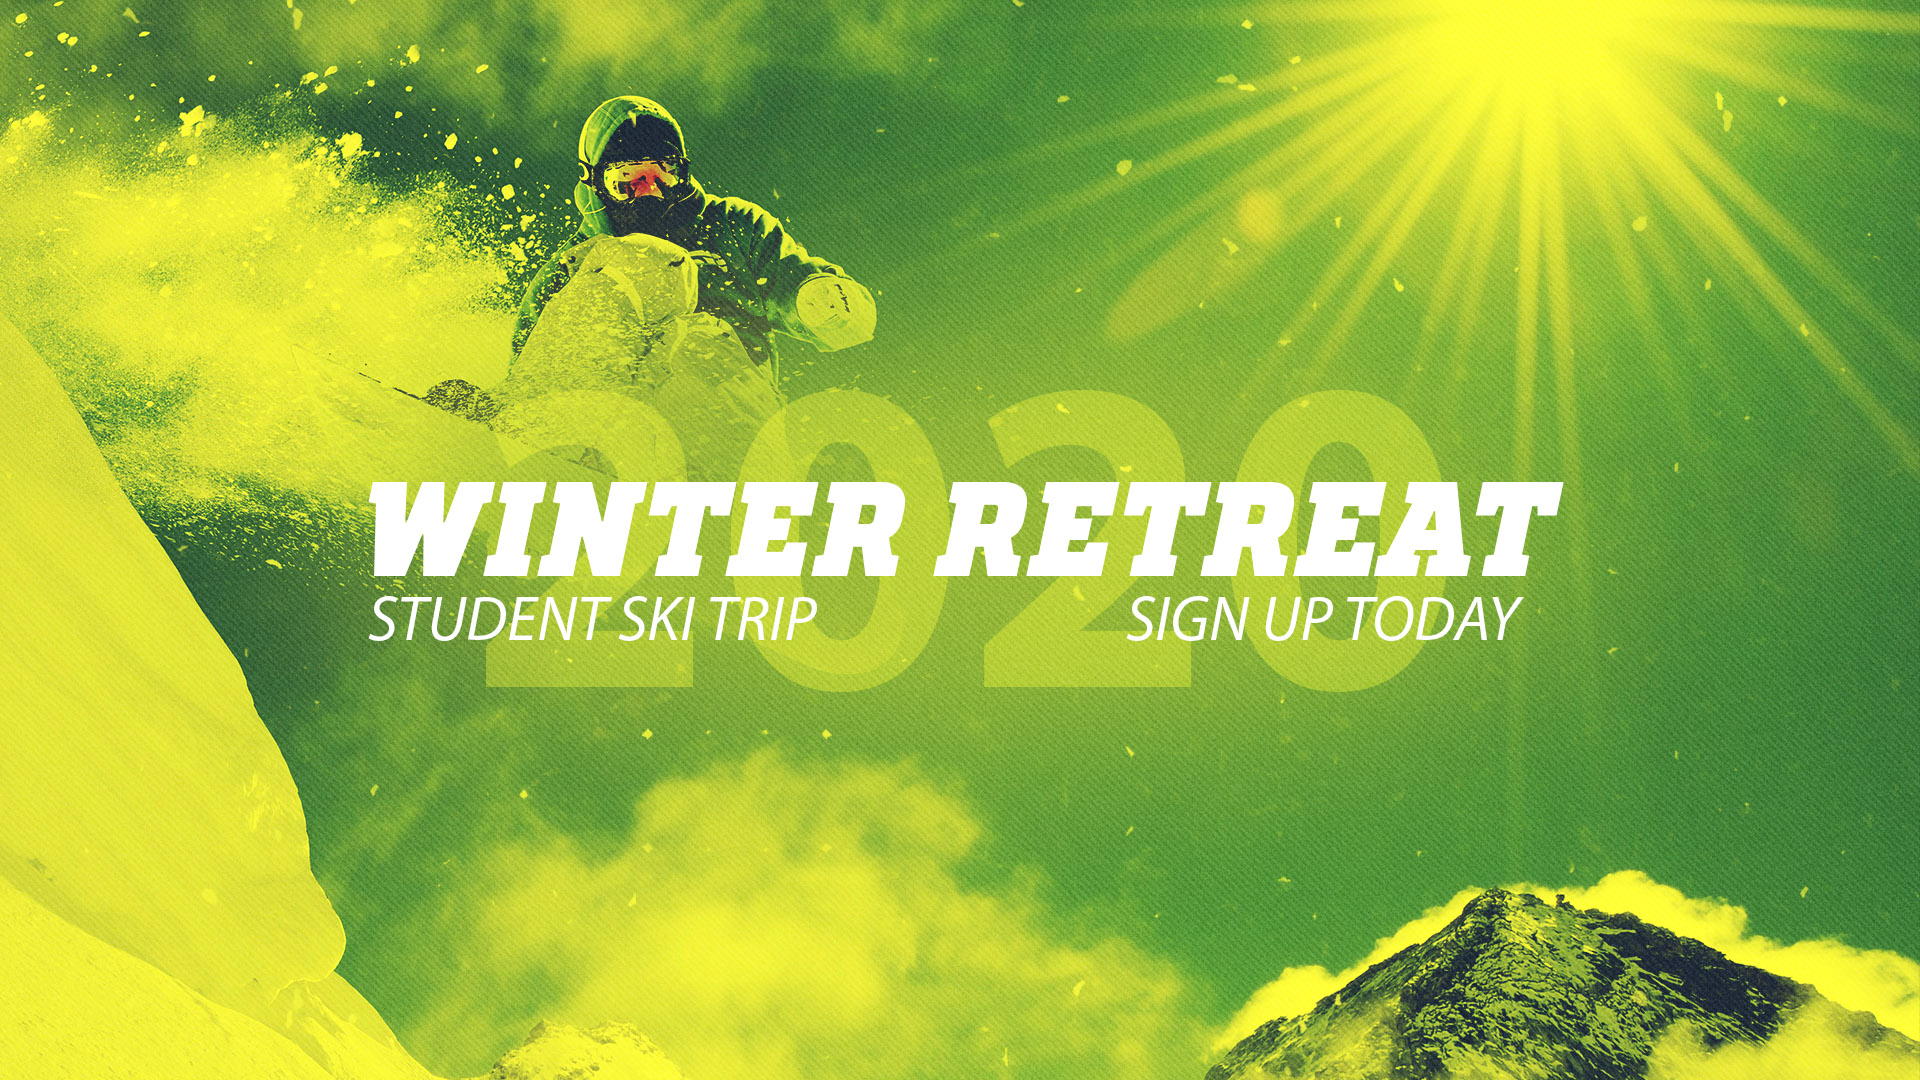 Winter Retreat Boarder image